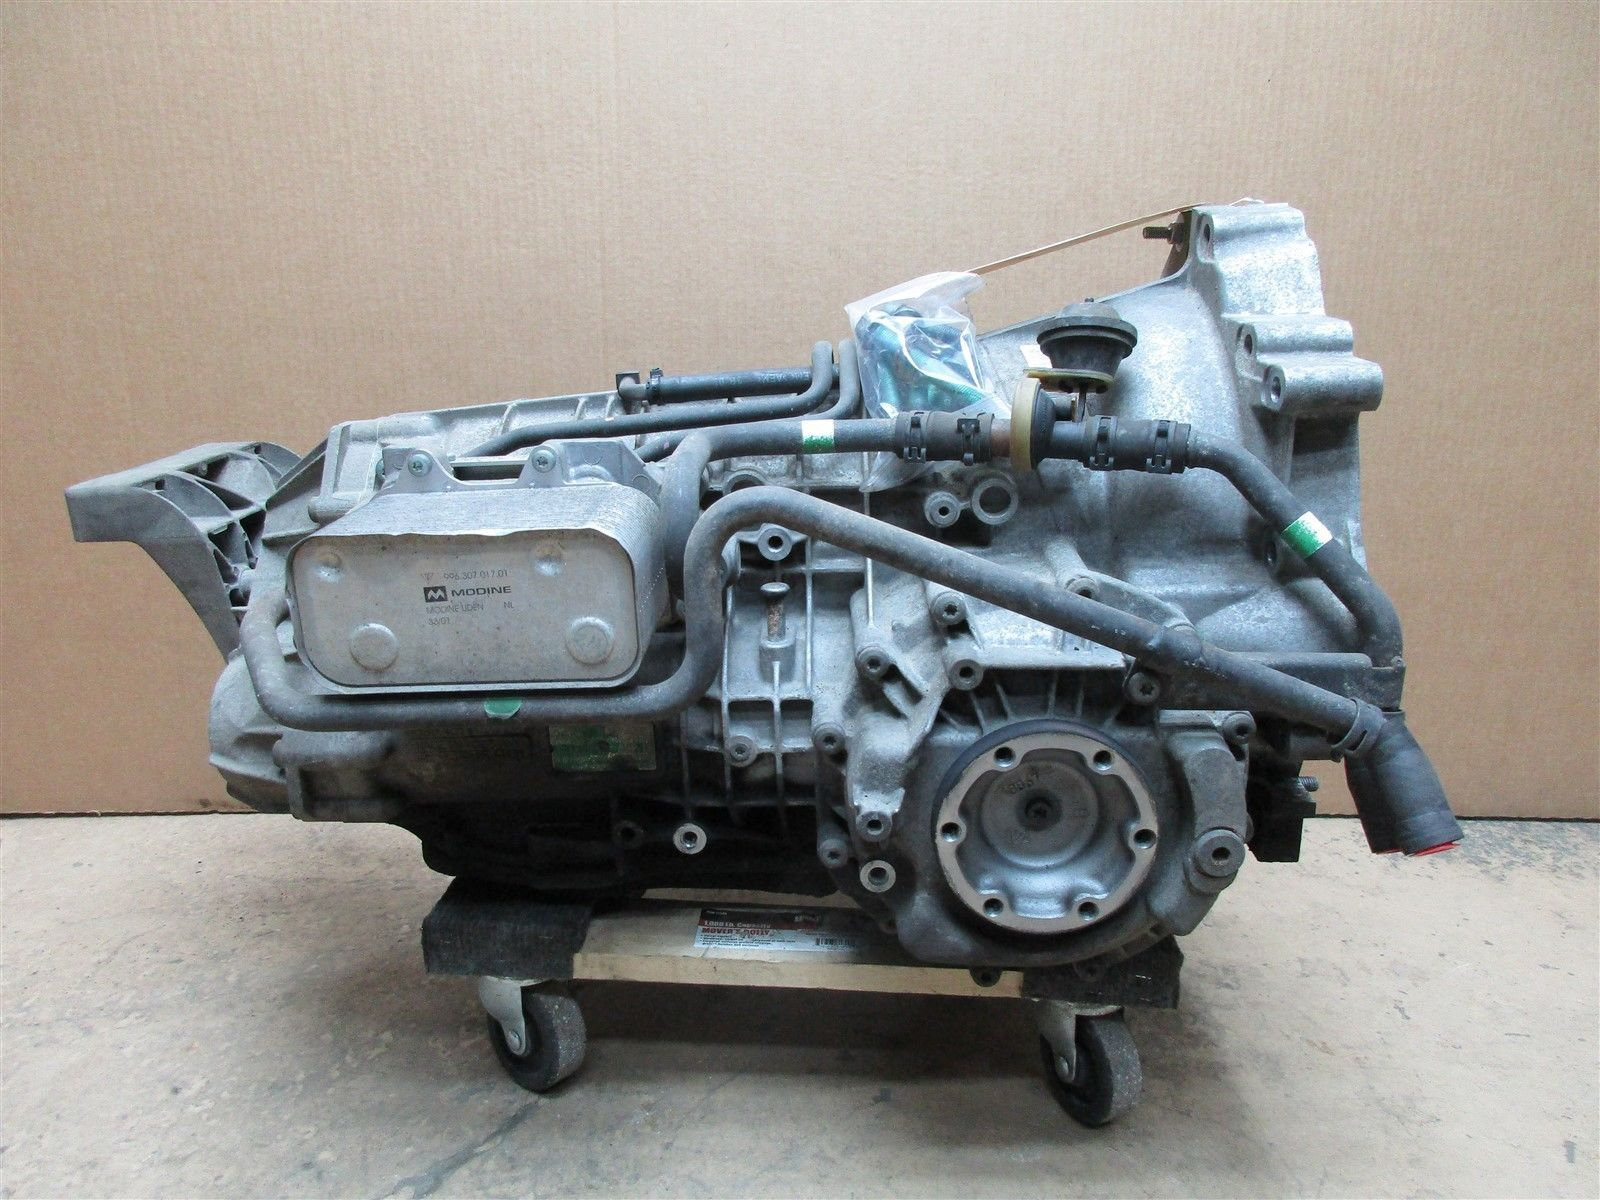 02 Boxster S RWD Porsche 986 AUTOMATIC TRANSMISSION 1060030030 5HP-19 84,984